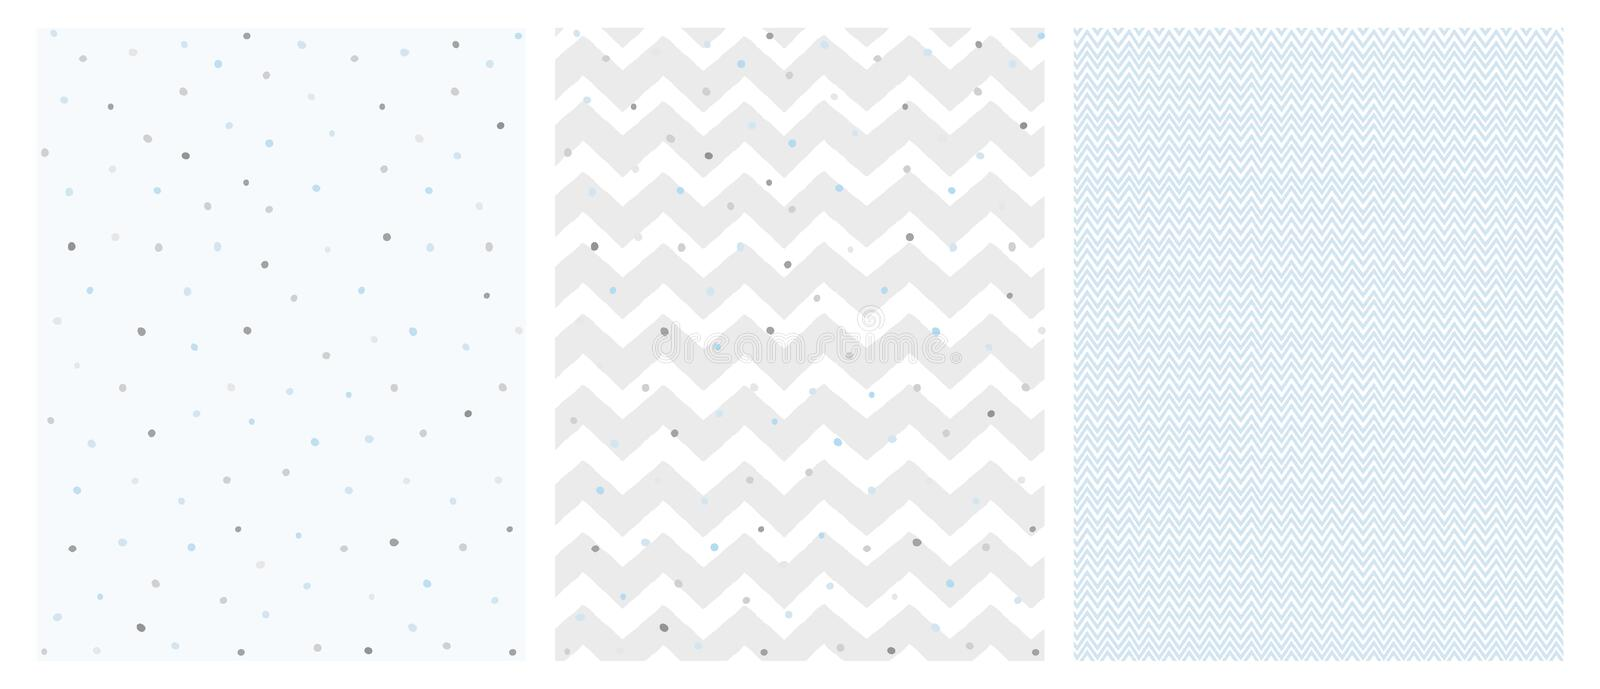 Set of 3 Bright Delicate Chevron and Dots Vector Patterns. royalty free stock image